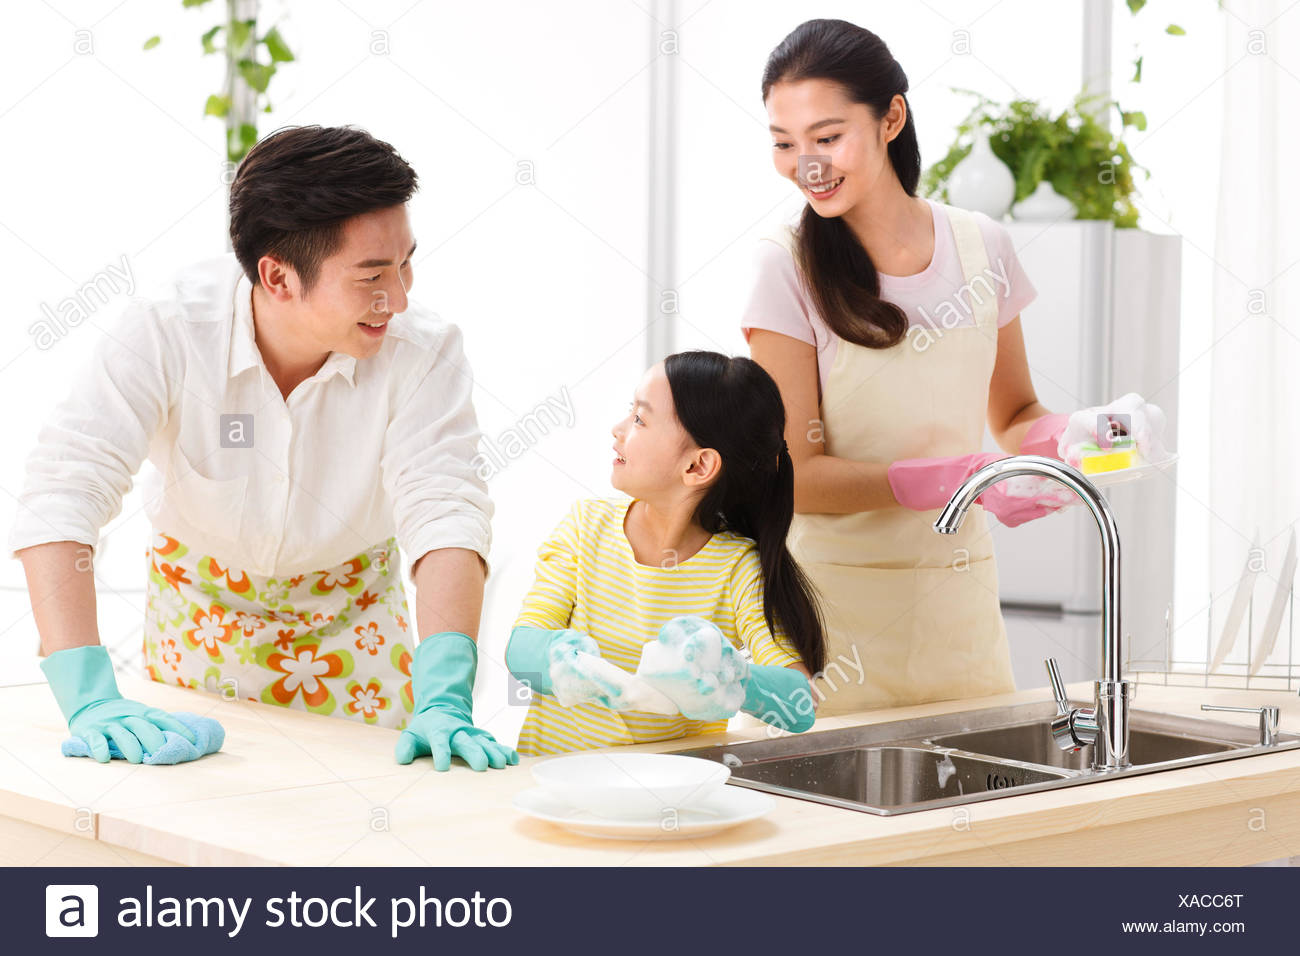 Family doing cleaning-up in kitchen - Stock Image